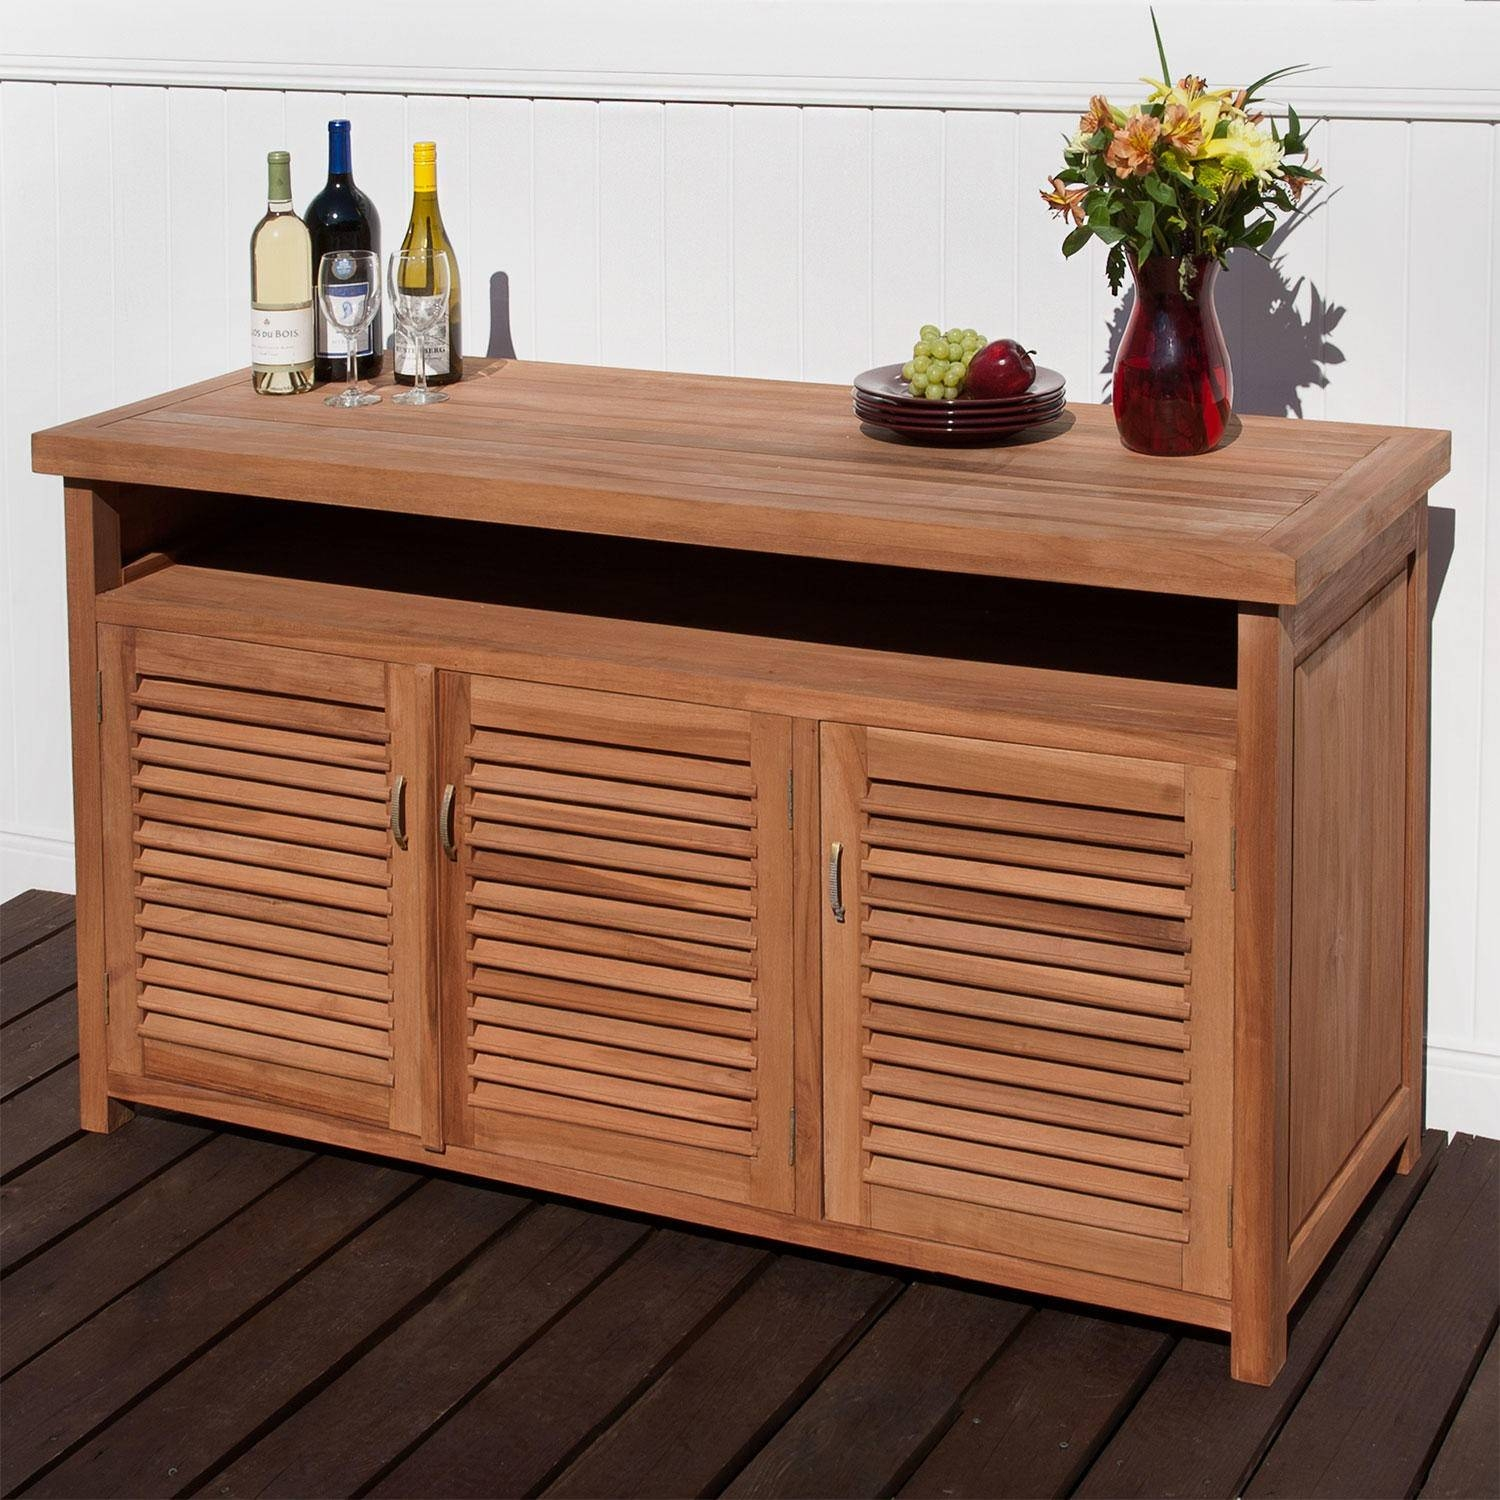 inspirations outdoor sideboard cabinets sideboards and buffets creative ideas table purple side grey bedside folding patio chairs cover wood accent pair white tables salvaged